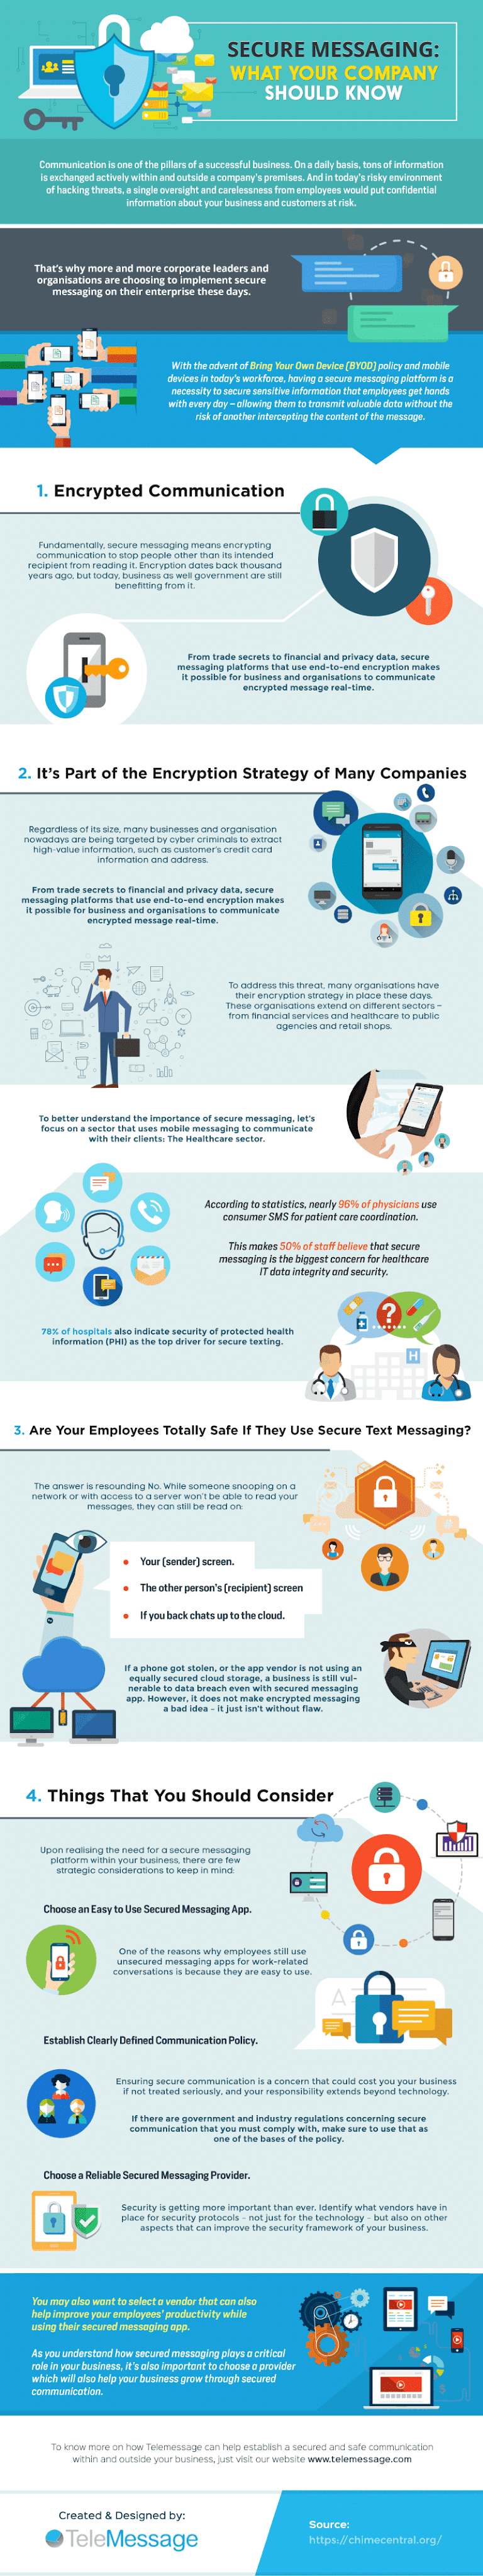 Secure Messaging: What Your Company Should Know #infographic #Business #Messaging #Secure Messaging